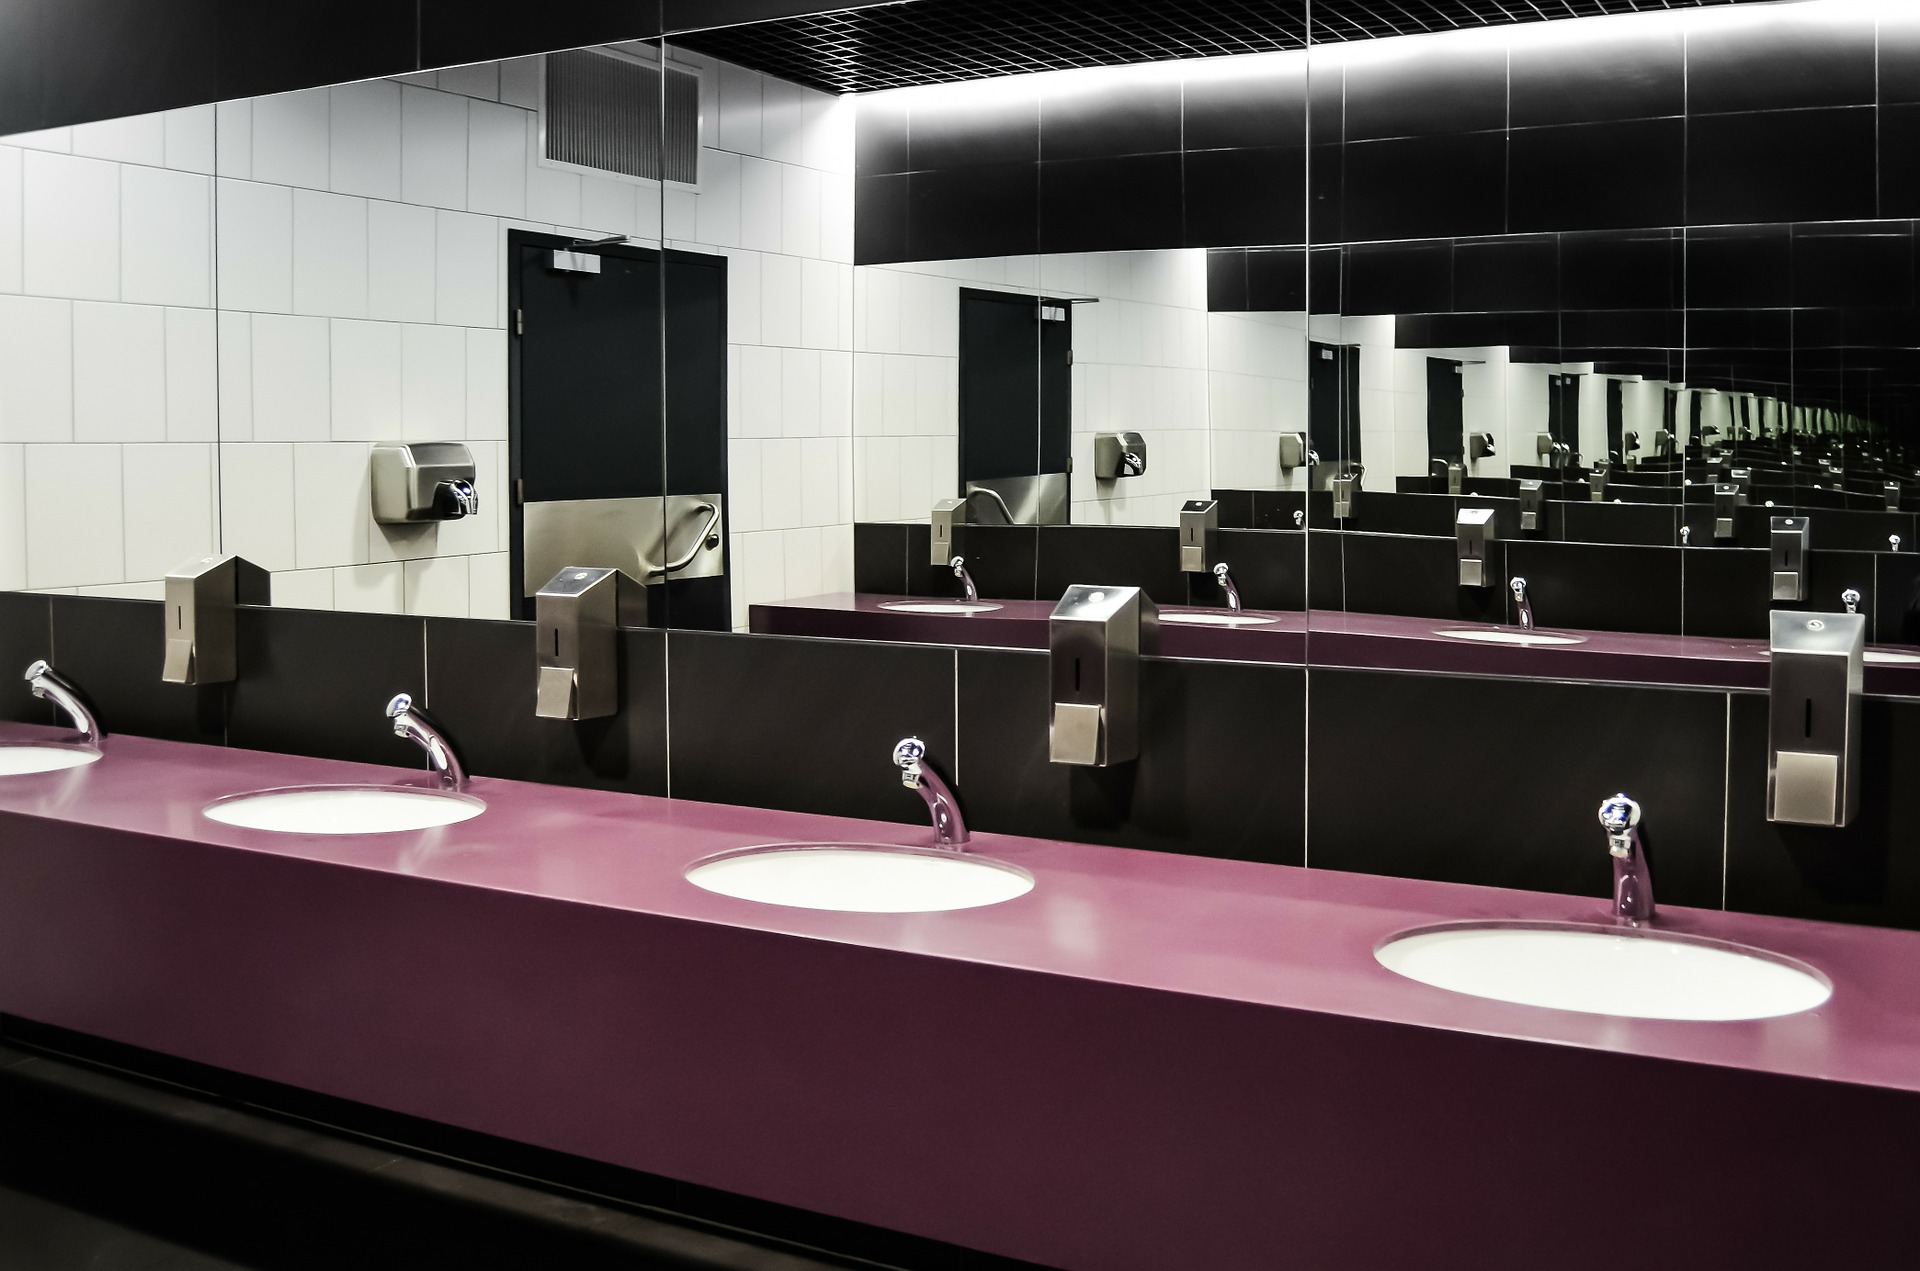 Public bathroom sinks with a lovely finish, just oozing class.